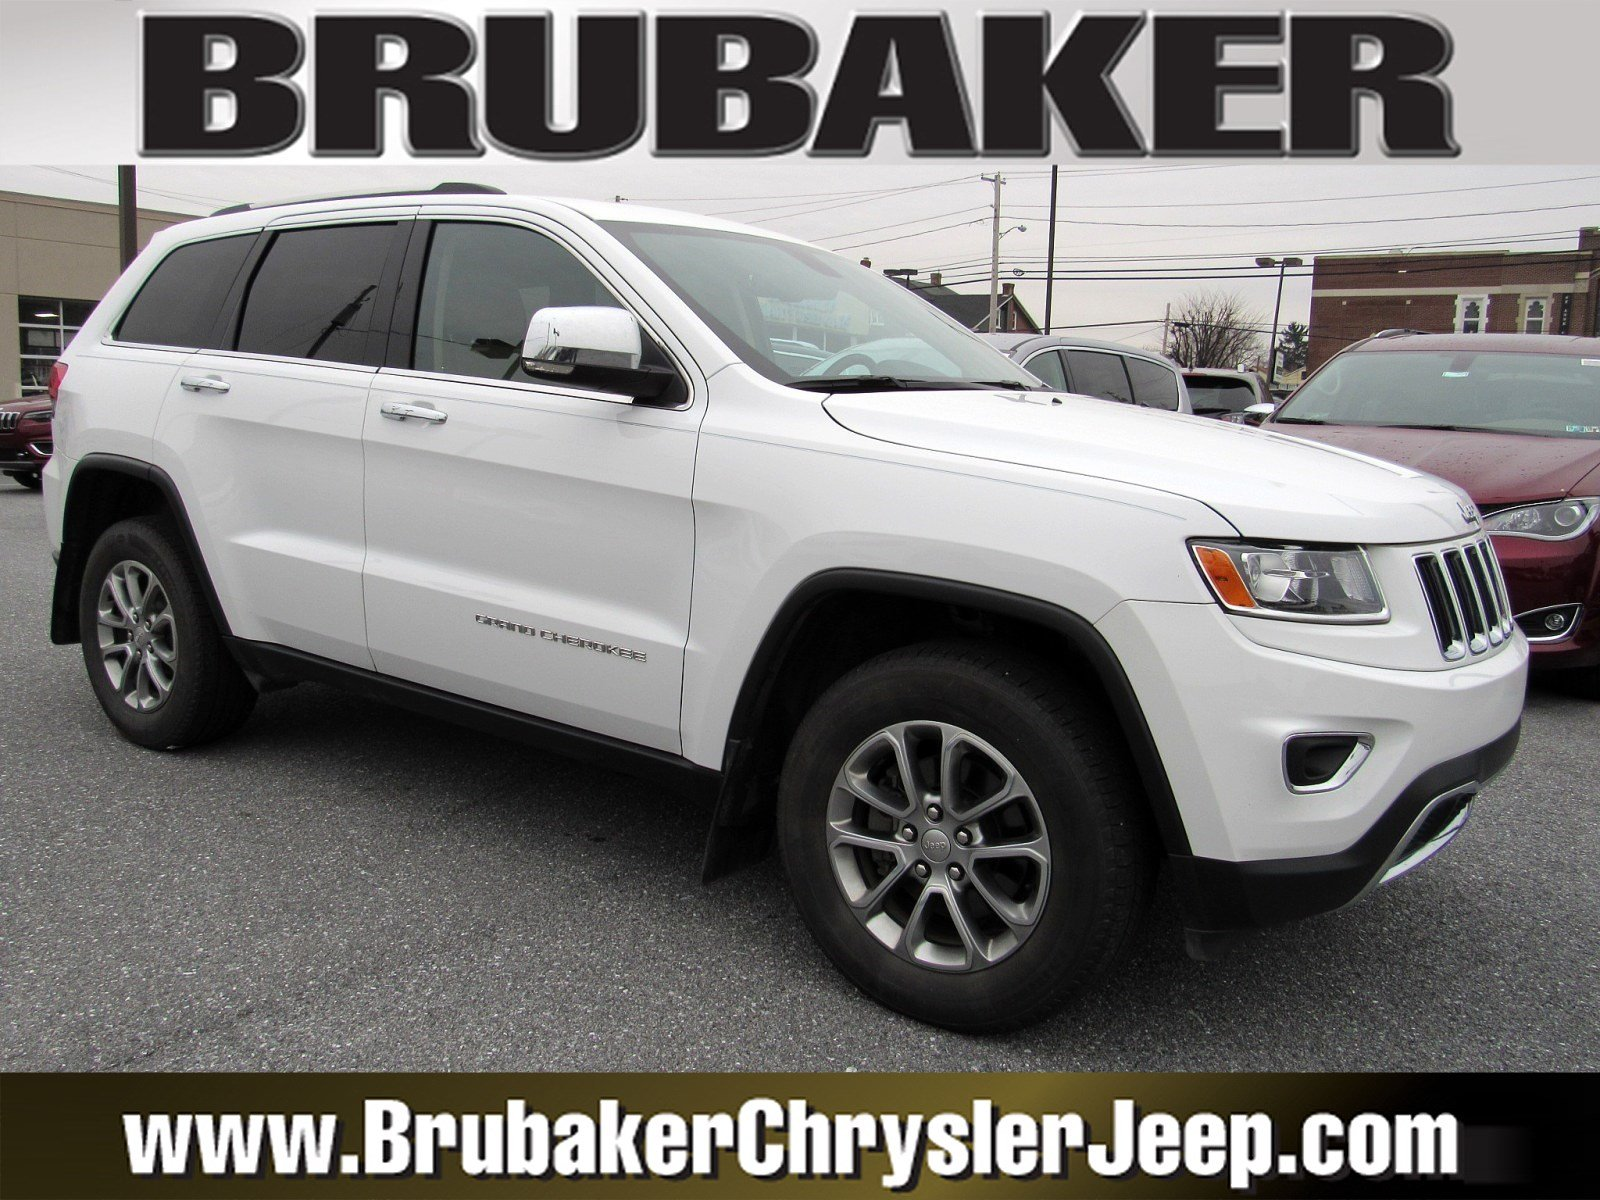 used 2015 jeep grand cherokee limited for sale lancaster pa Military Jeep XJ 2015 jeep grand cherokee limited 4wd limited